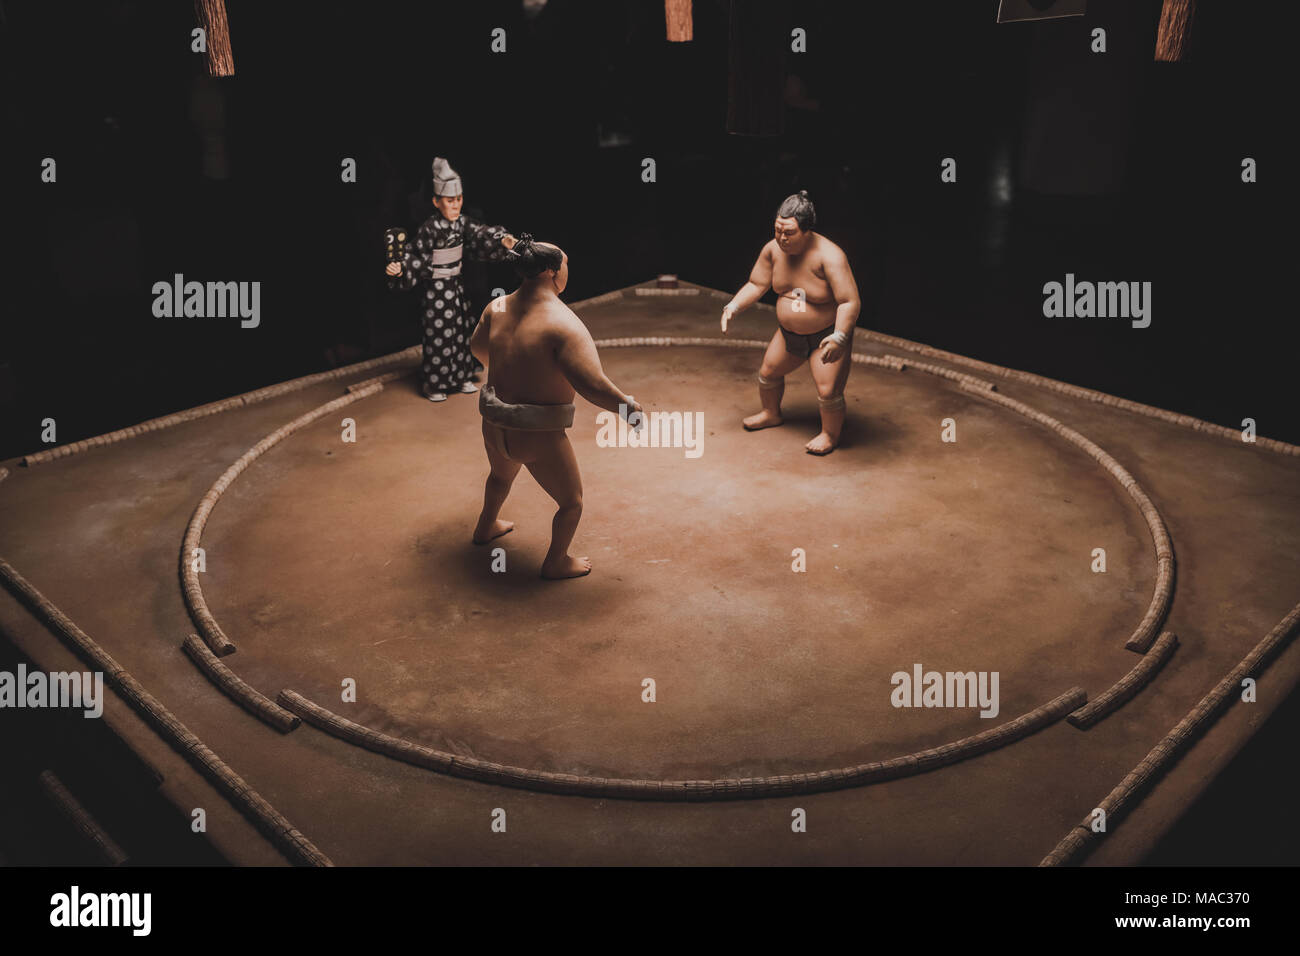 Sumo wrestlers on display in London at the Isle of Dogs exhibition, directed by Wes Anderson – March 2018 - Stock Image